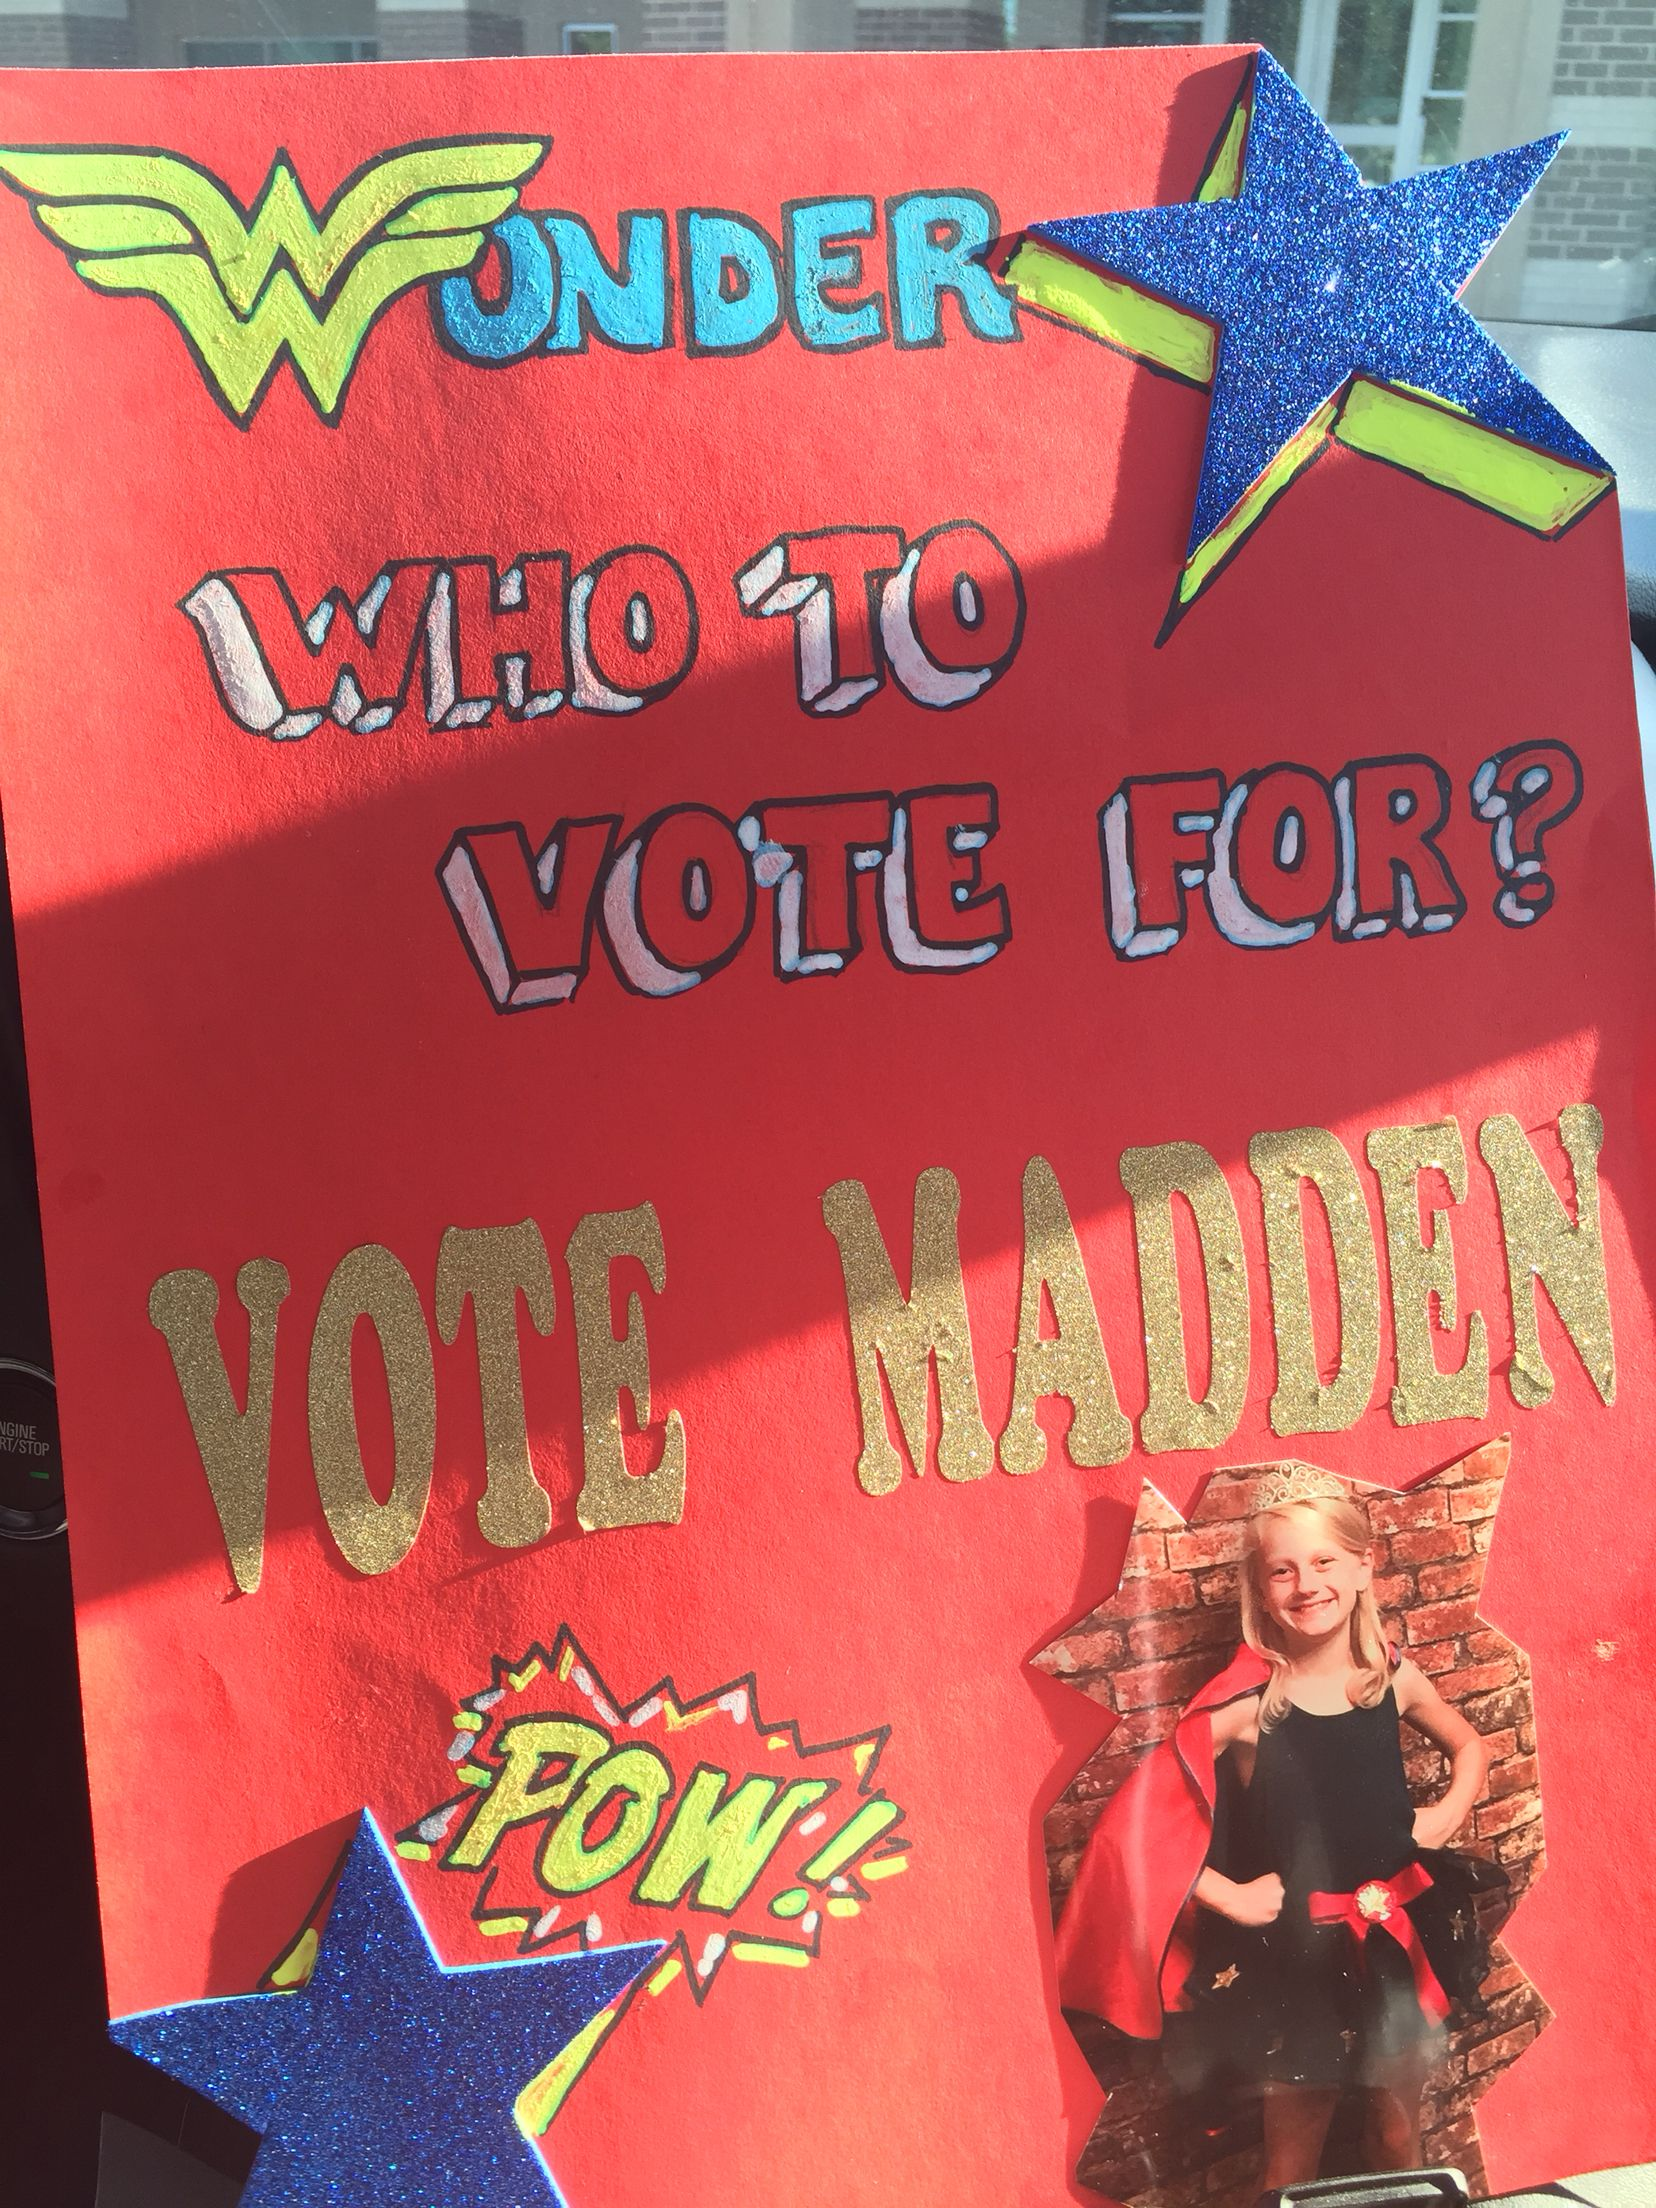 Classroom Voting Ideas ~ Wonder woman student council poster